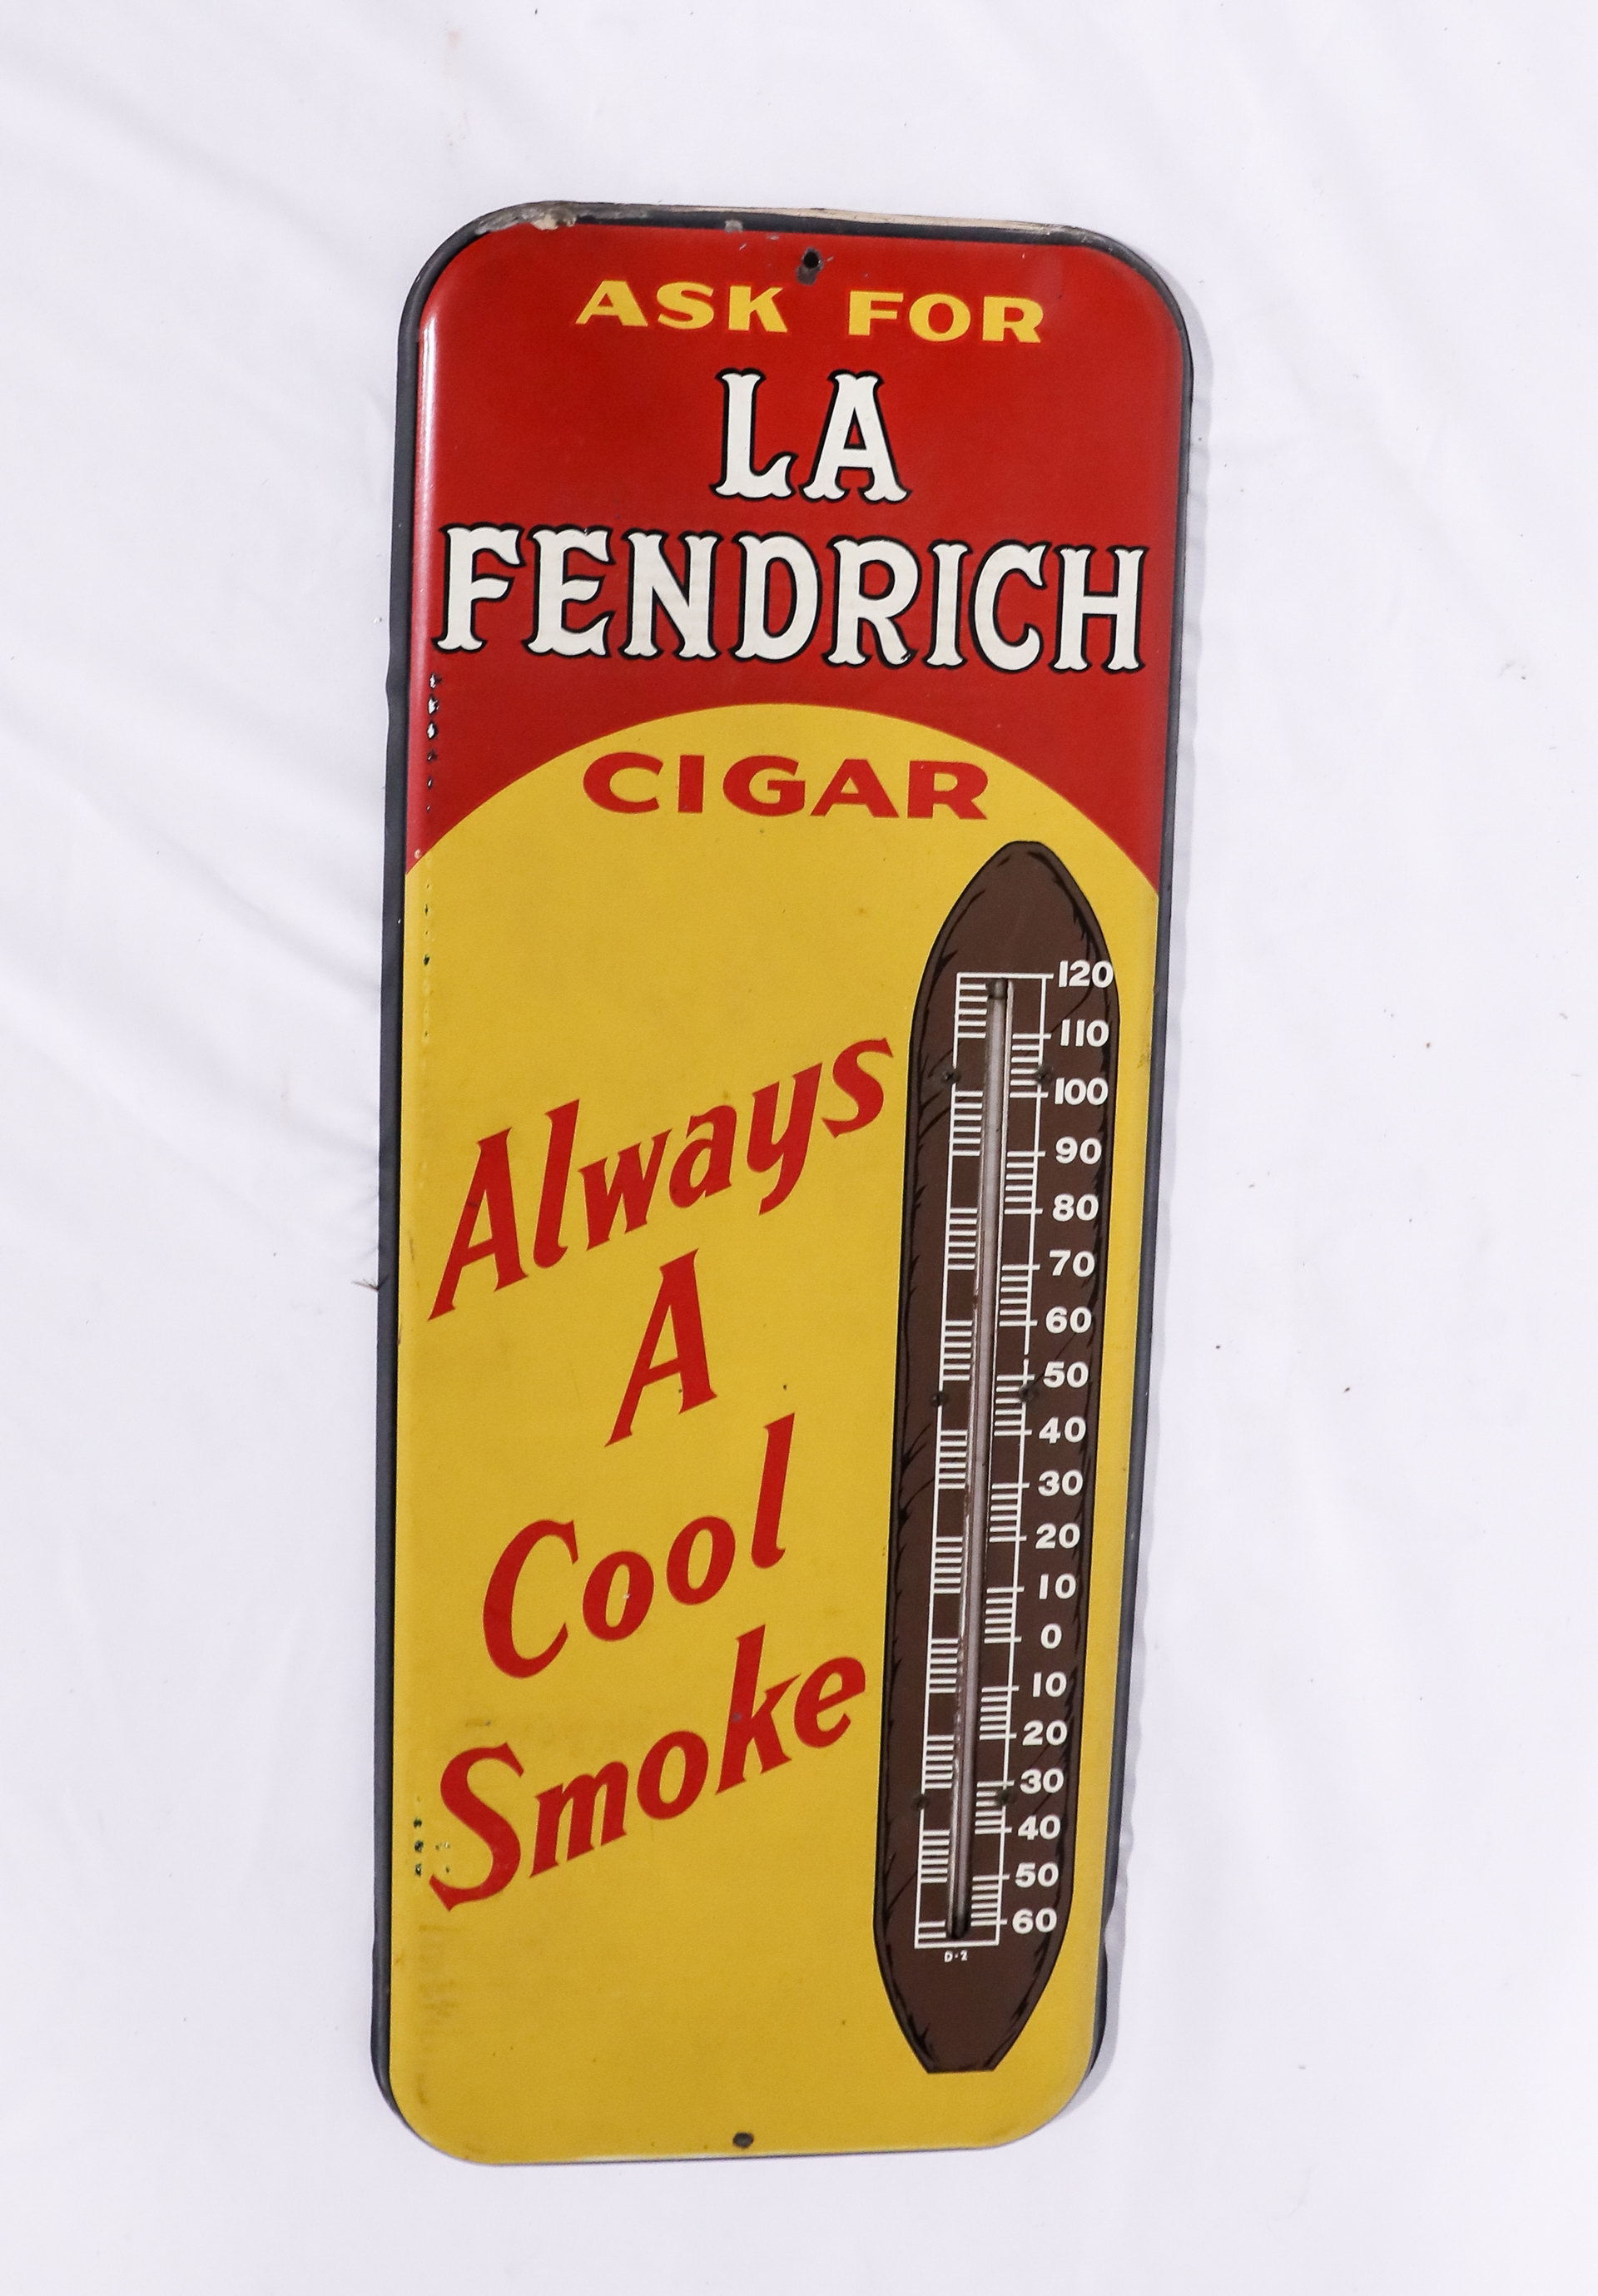 La Fendrich Cigar Advertising Thermometer Sign